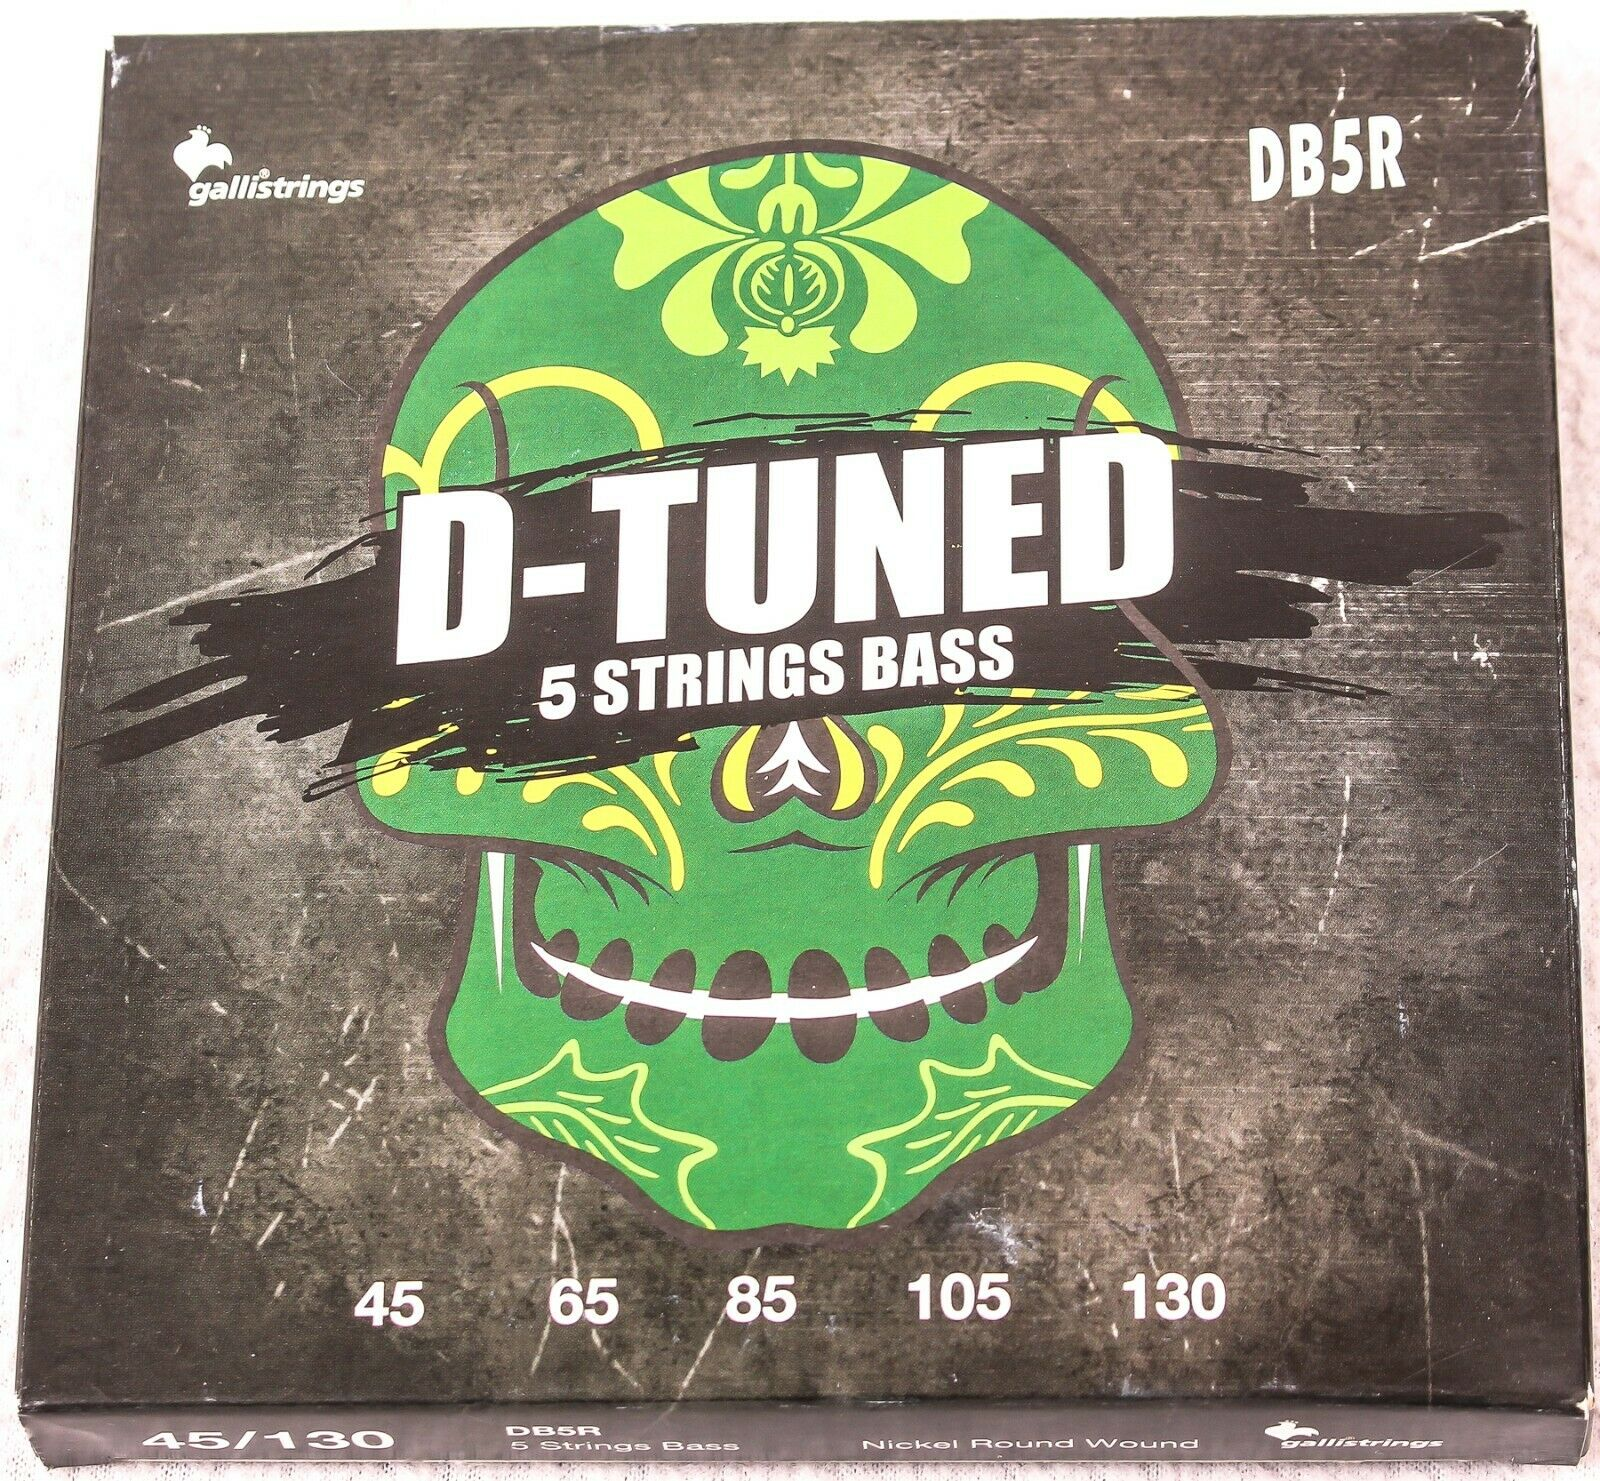 3-PACK, Gallistrings Db5R D-Tuned 5 String Bass, NEW